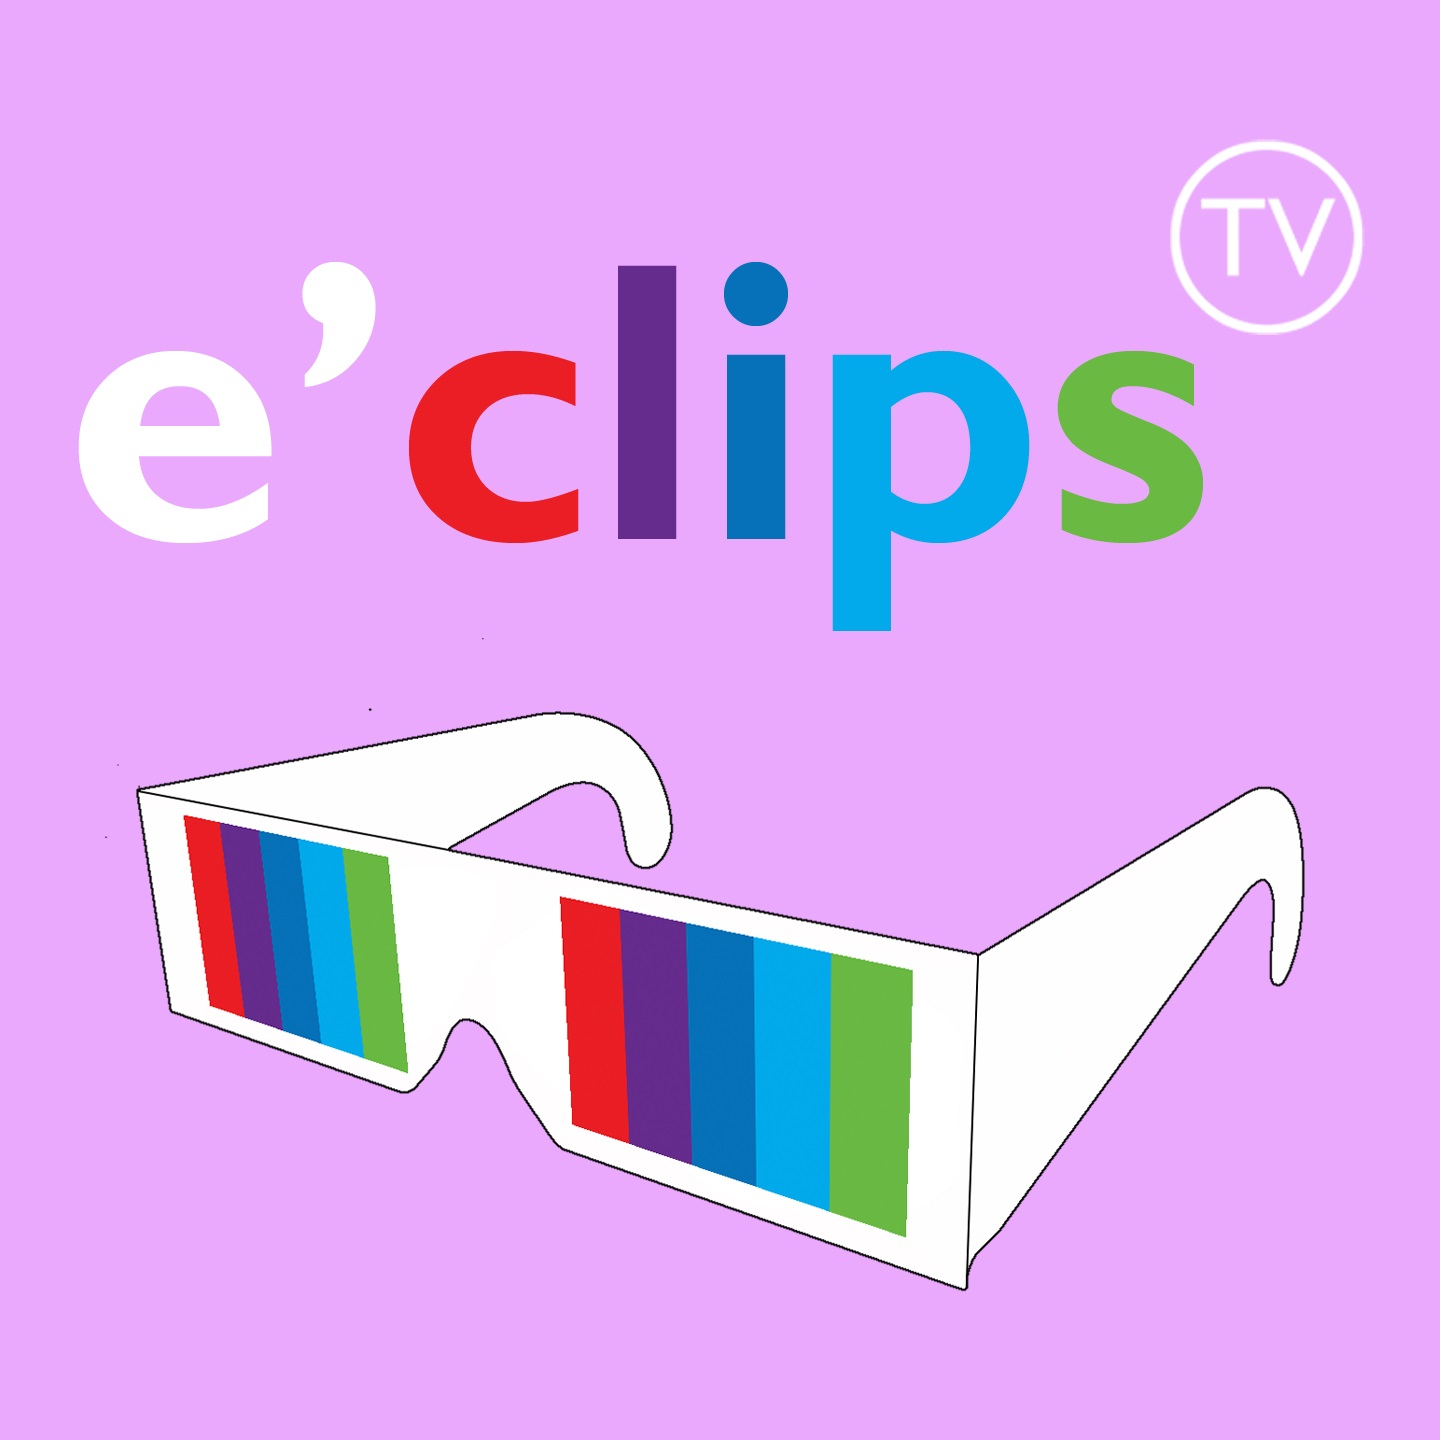 EClips TV